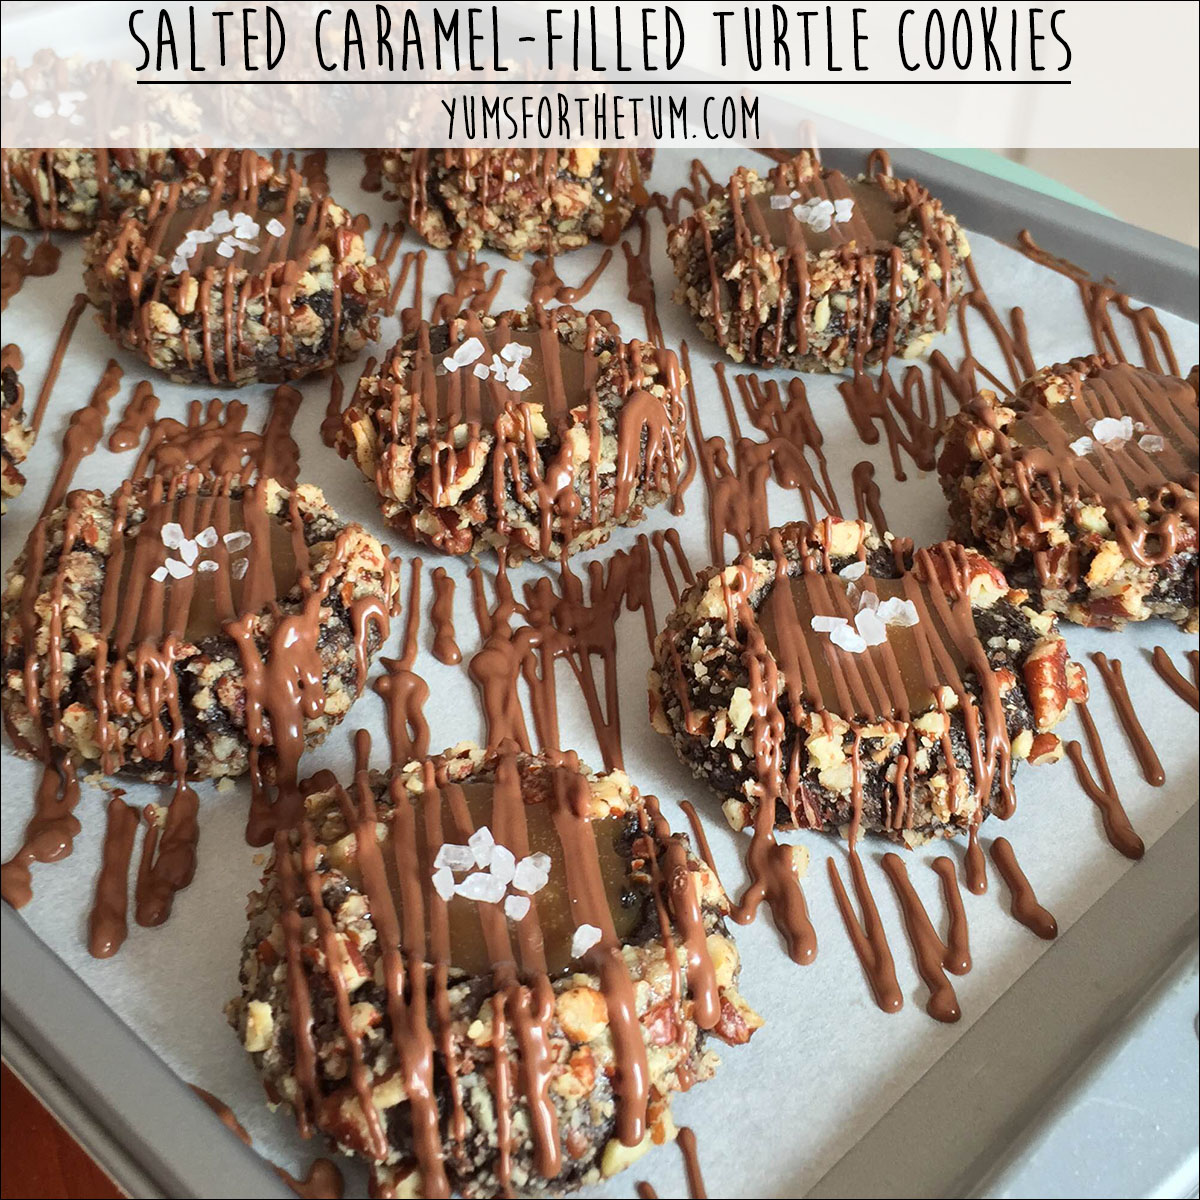 Salted Caramel-Filled Turtle Cookies